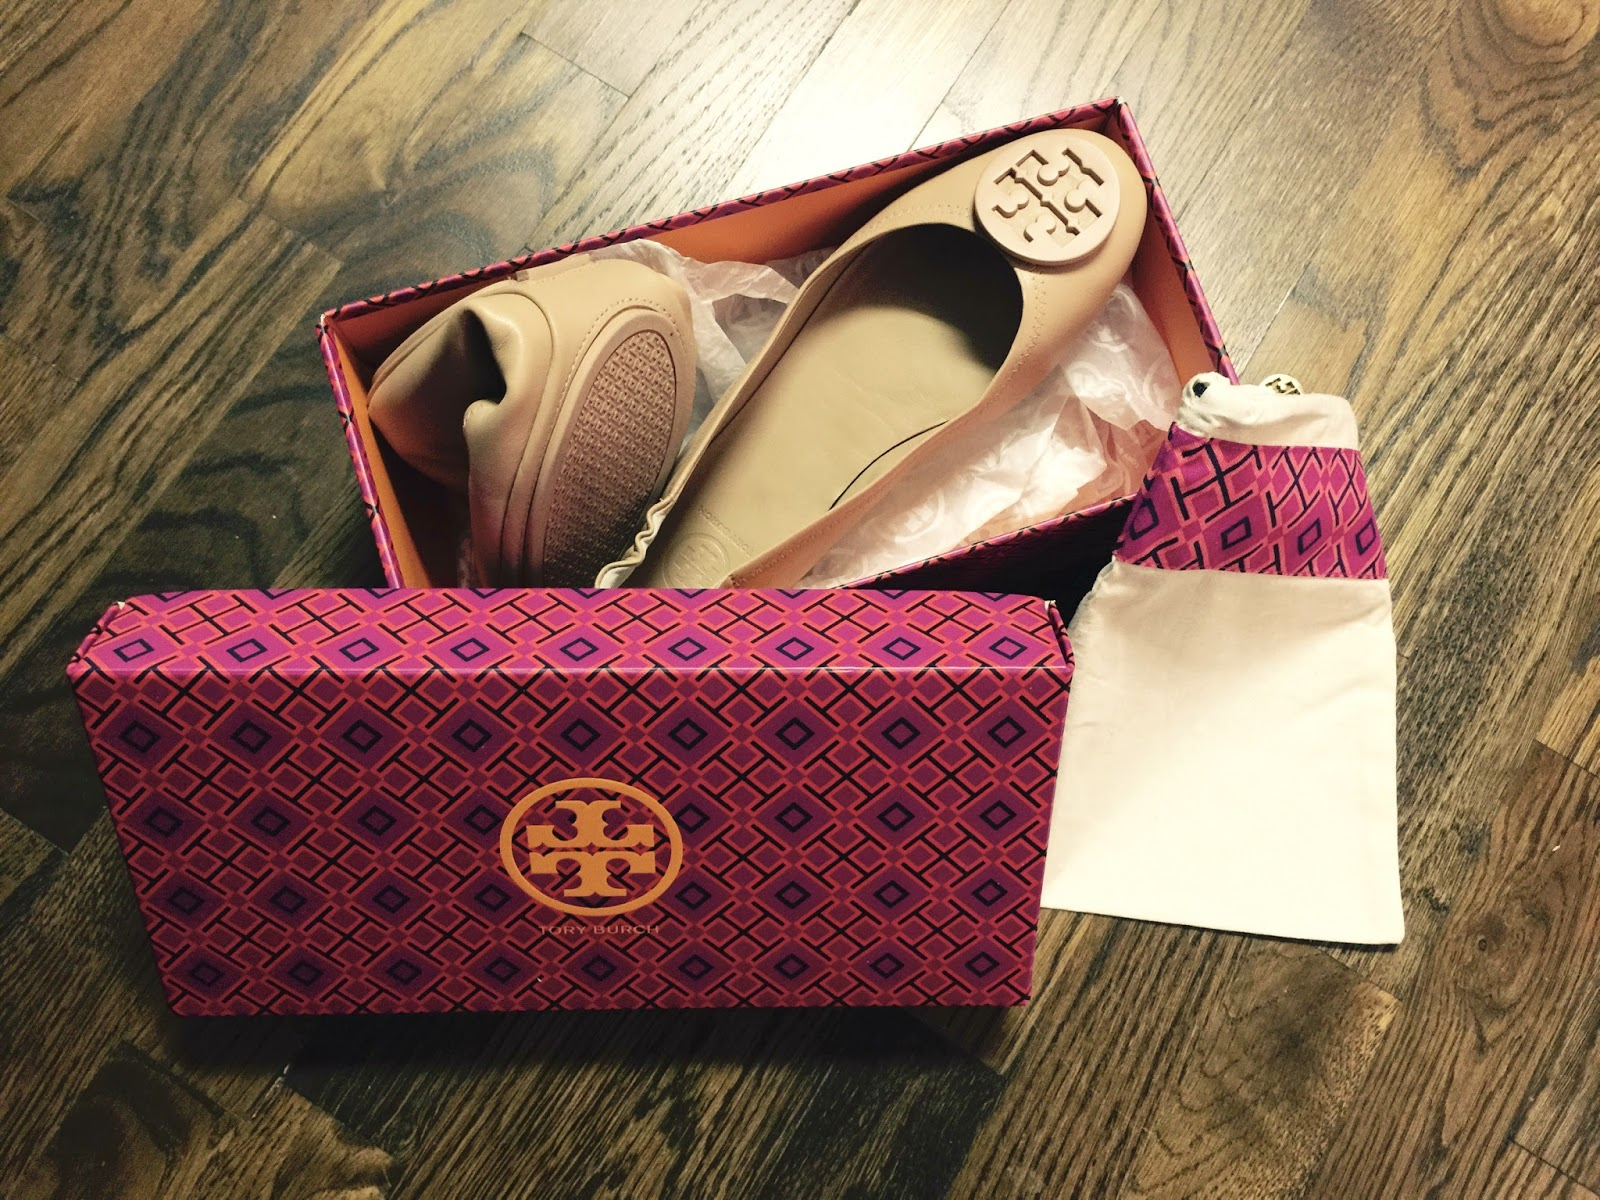 bf94abc8827 We ve all seen the Tory Burch Reva Ballerina Flat - you know the black  ballet flat with a metal medallion